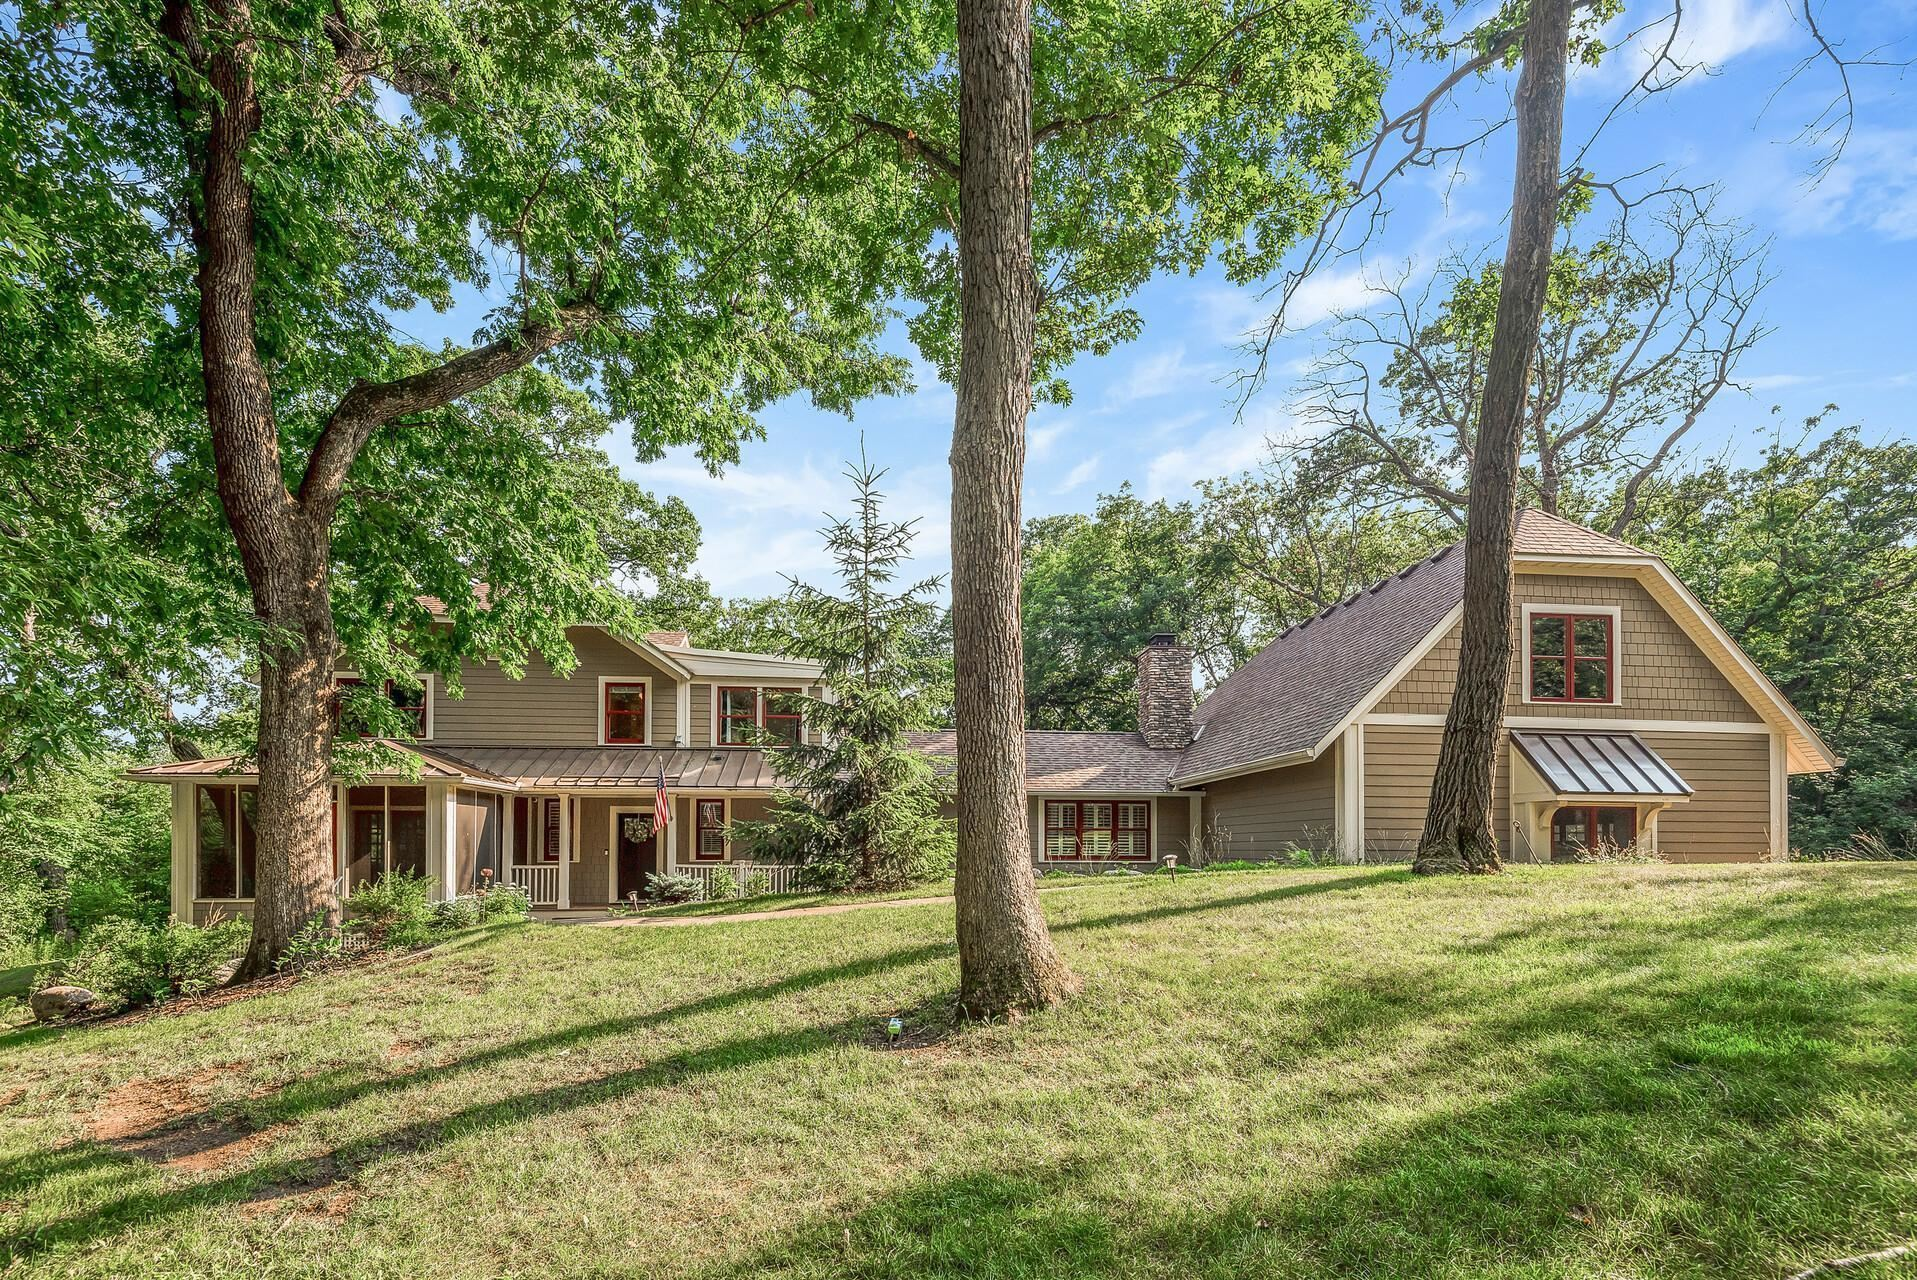 Photo of 22 Highway 96 E, Dellwood, MN 55110 (MLS # 6018778)